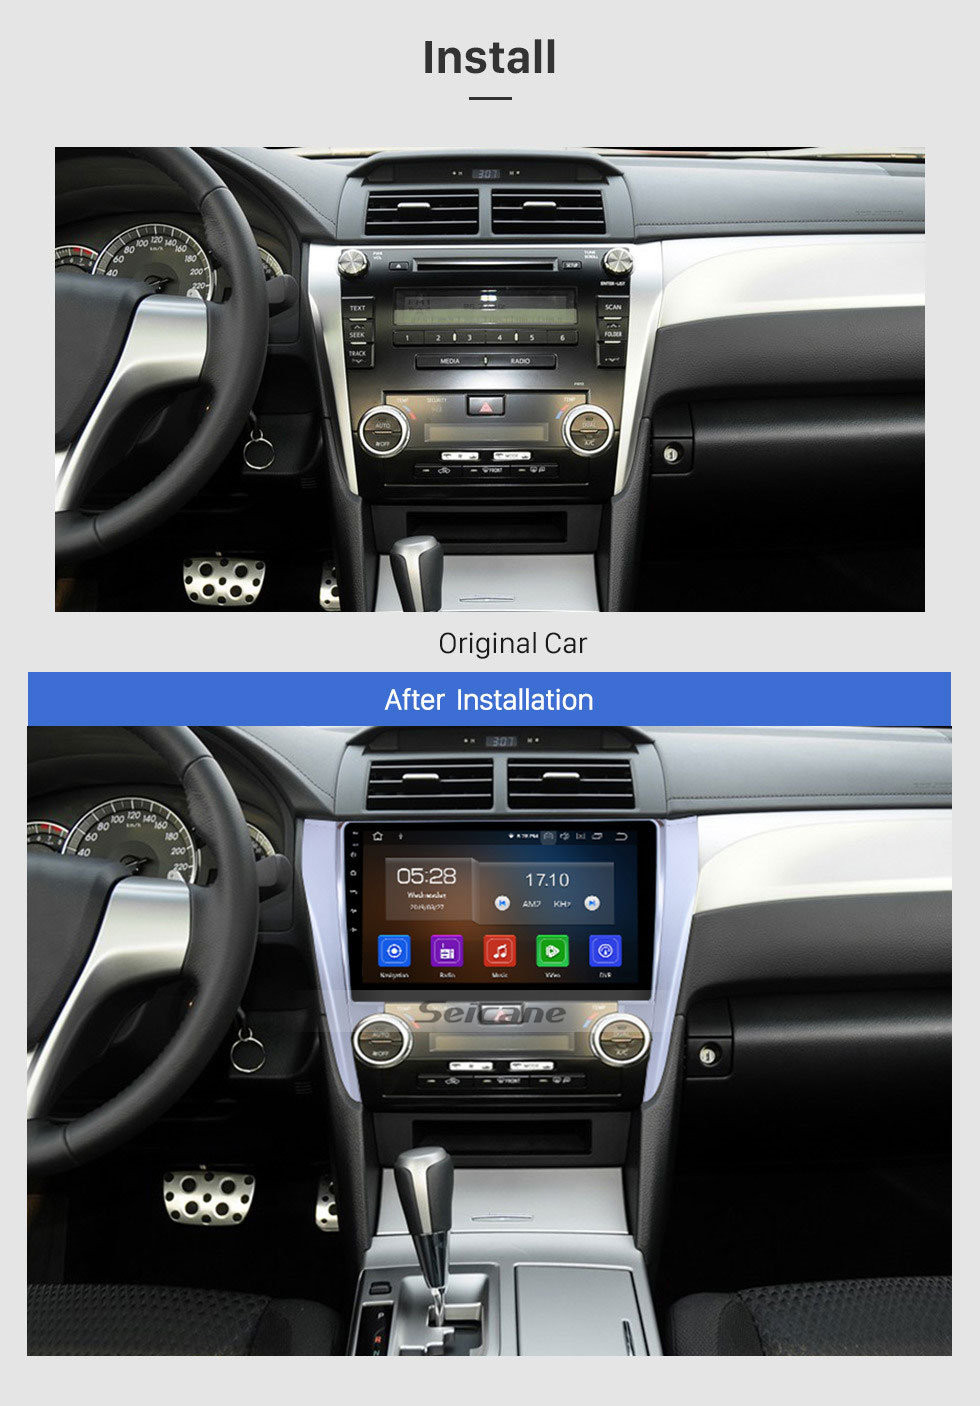 Seicane 10.1 inch Android 10.0 head unit GPS  navigation system for 2012 2013 2014 2015 Toyota  CAMRY Bluetooth Radio support DVD player Mirror link Capacitive multi-touch screen OBD DVR Rear view camera TV 3G WIFI USB